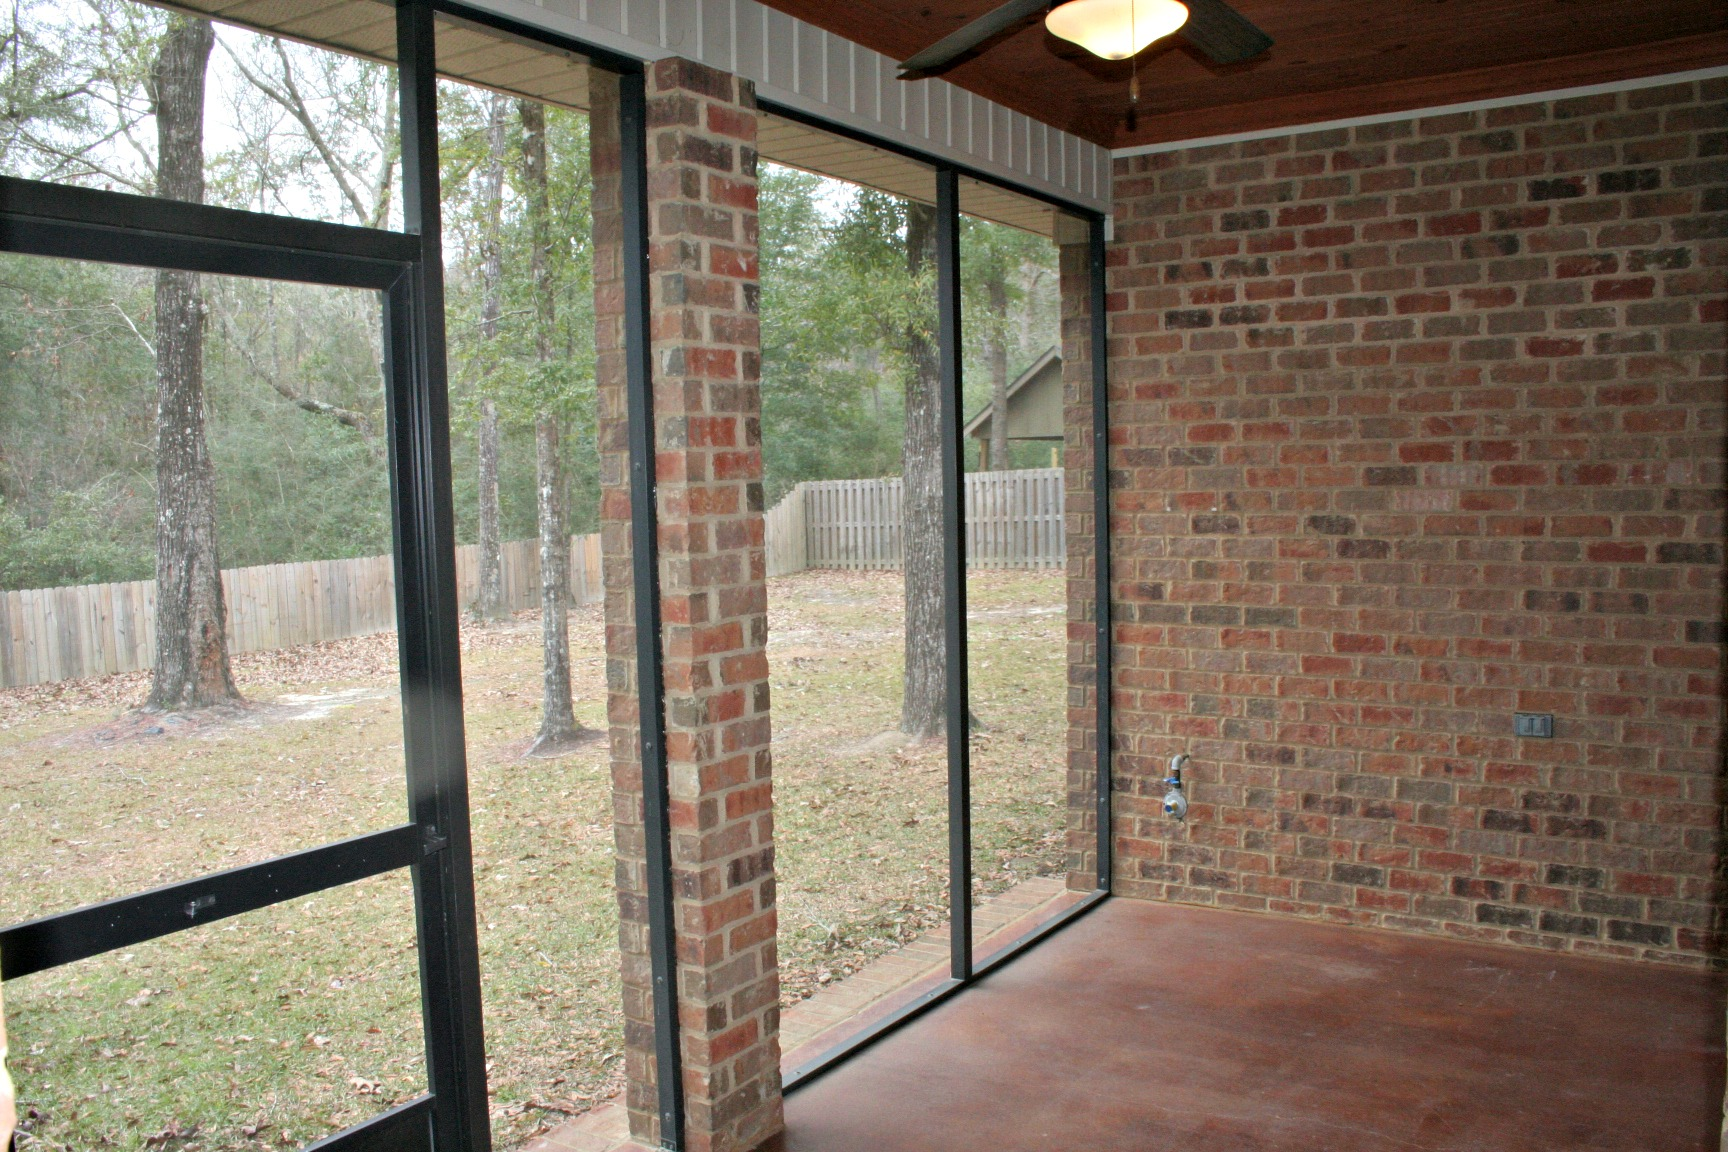 Houses For Sale Bay Minette Al Houses For Sale Bay